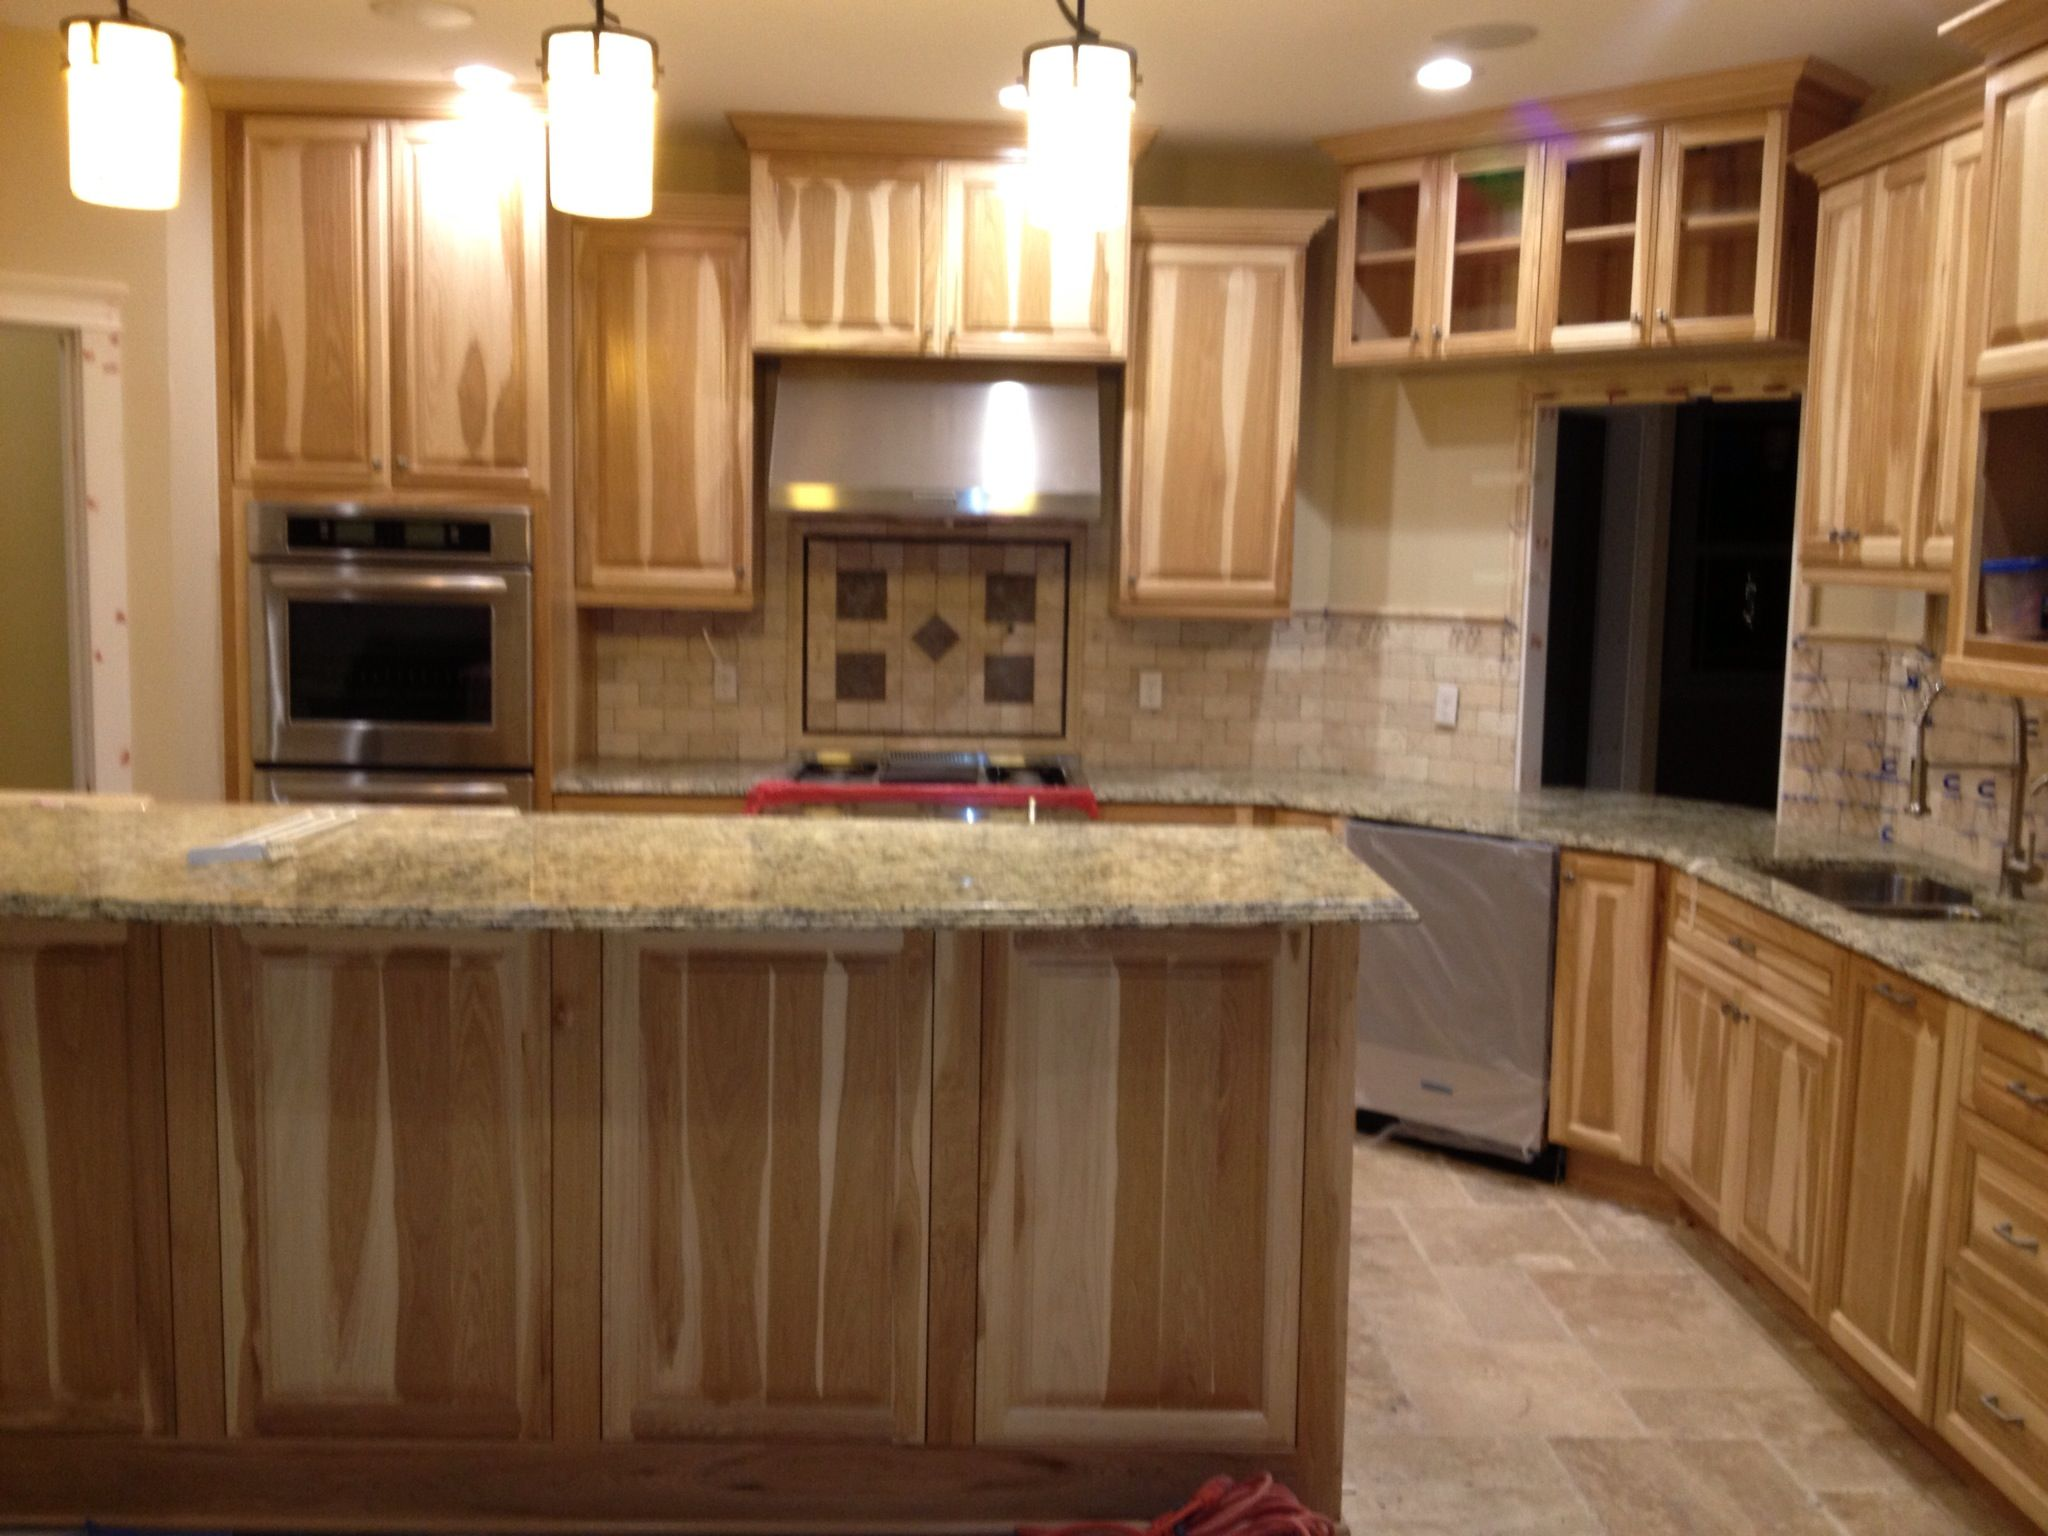 kitchen cabinets and countertops wooden set for toddlers with hickory travertine backsplash